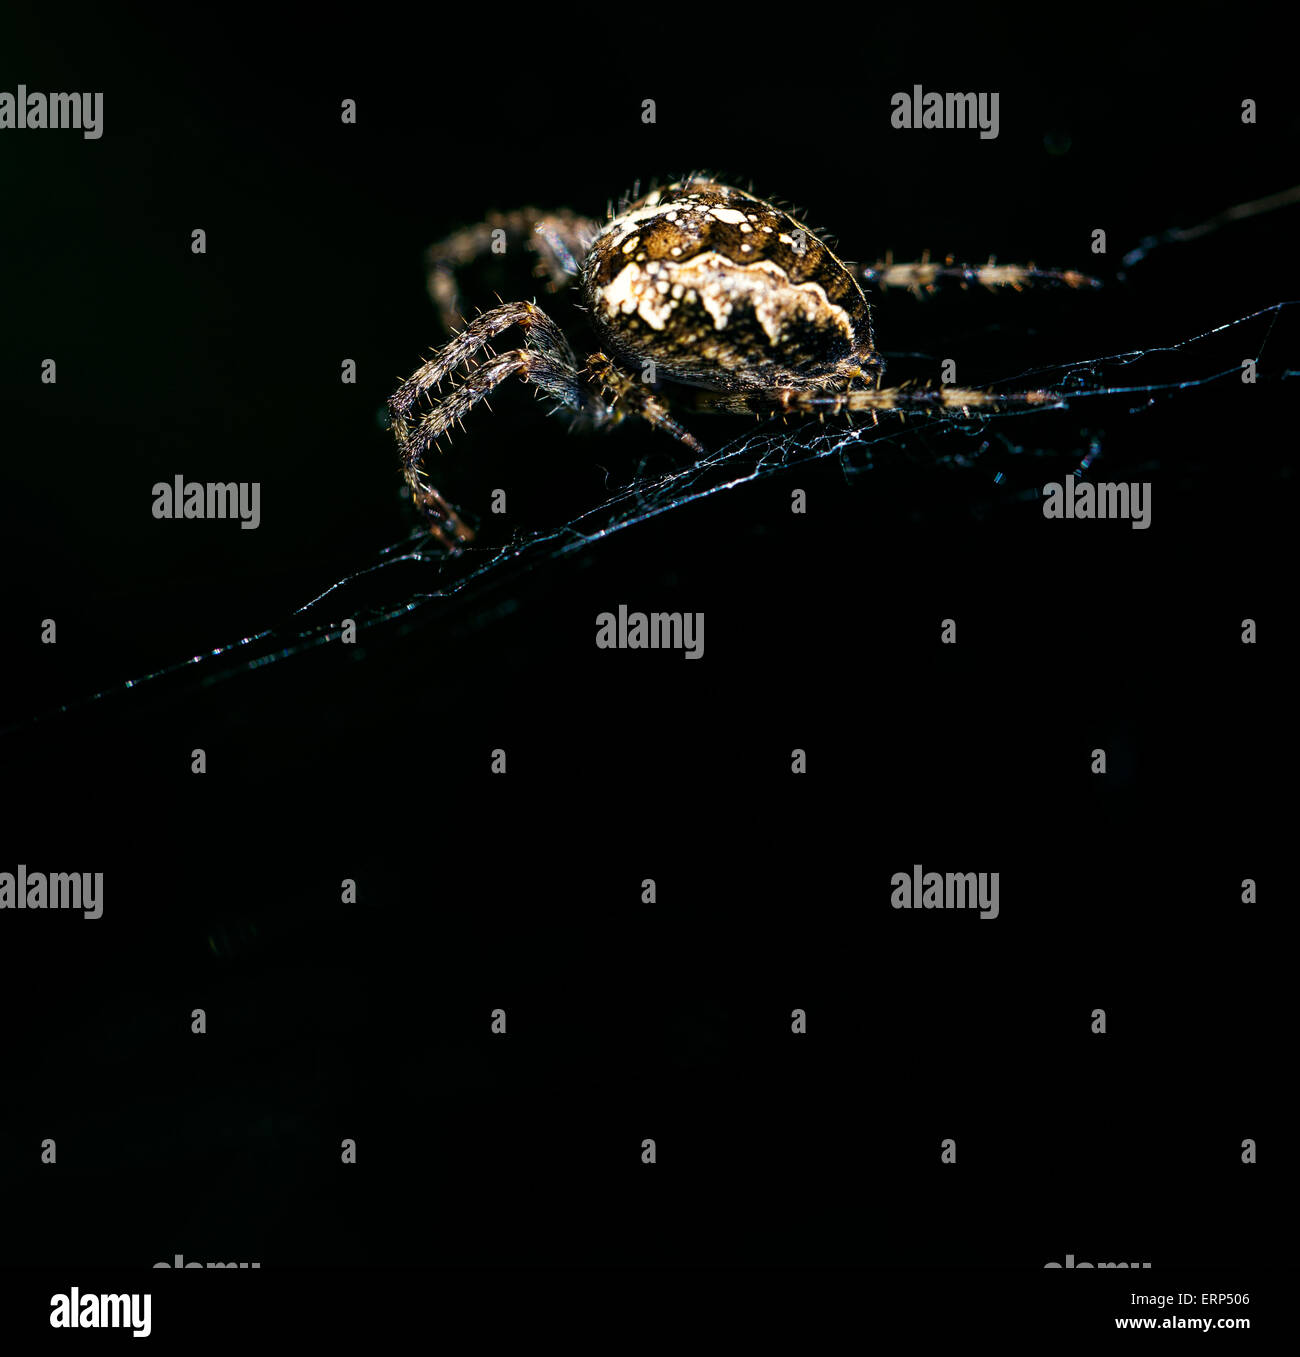 A garden spider on its web lit by a flash gun. - Stock Image